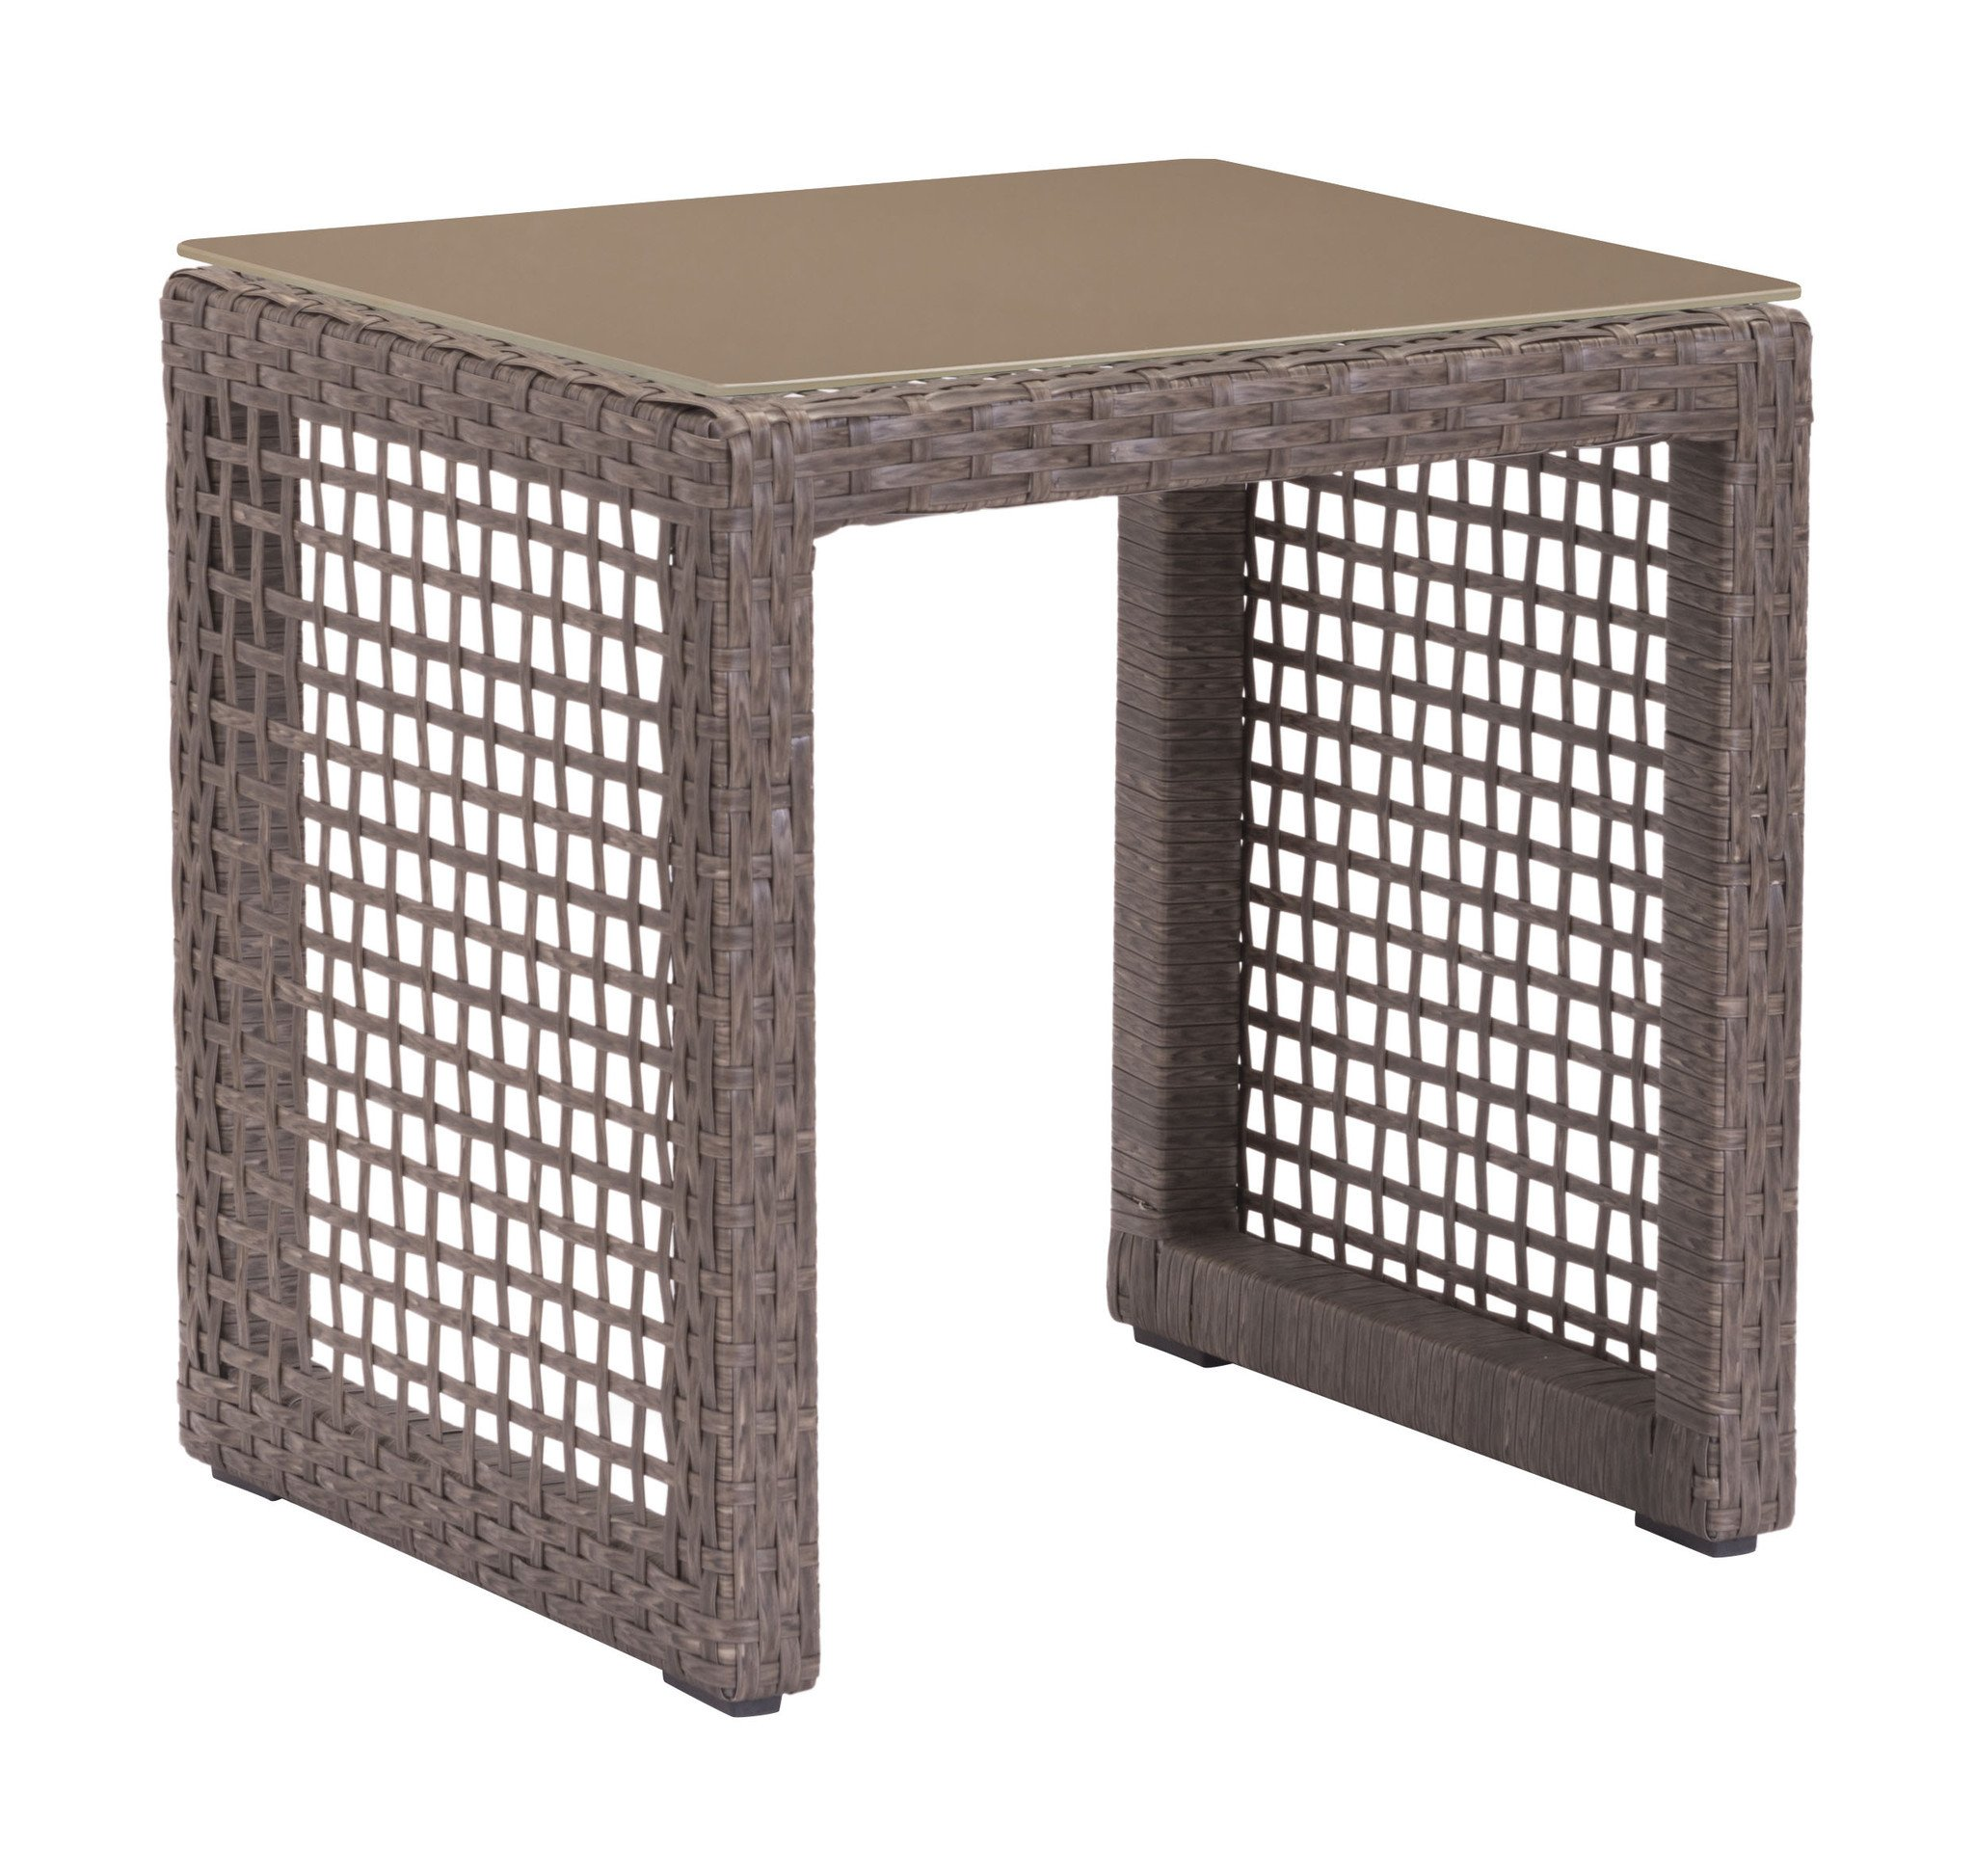 coronado patio end table woven cocoa resin with tempered glass outdoor side tables alan decor tall nightstand coffee marble and granite round cover thin lamps dinette set